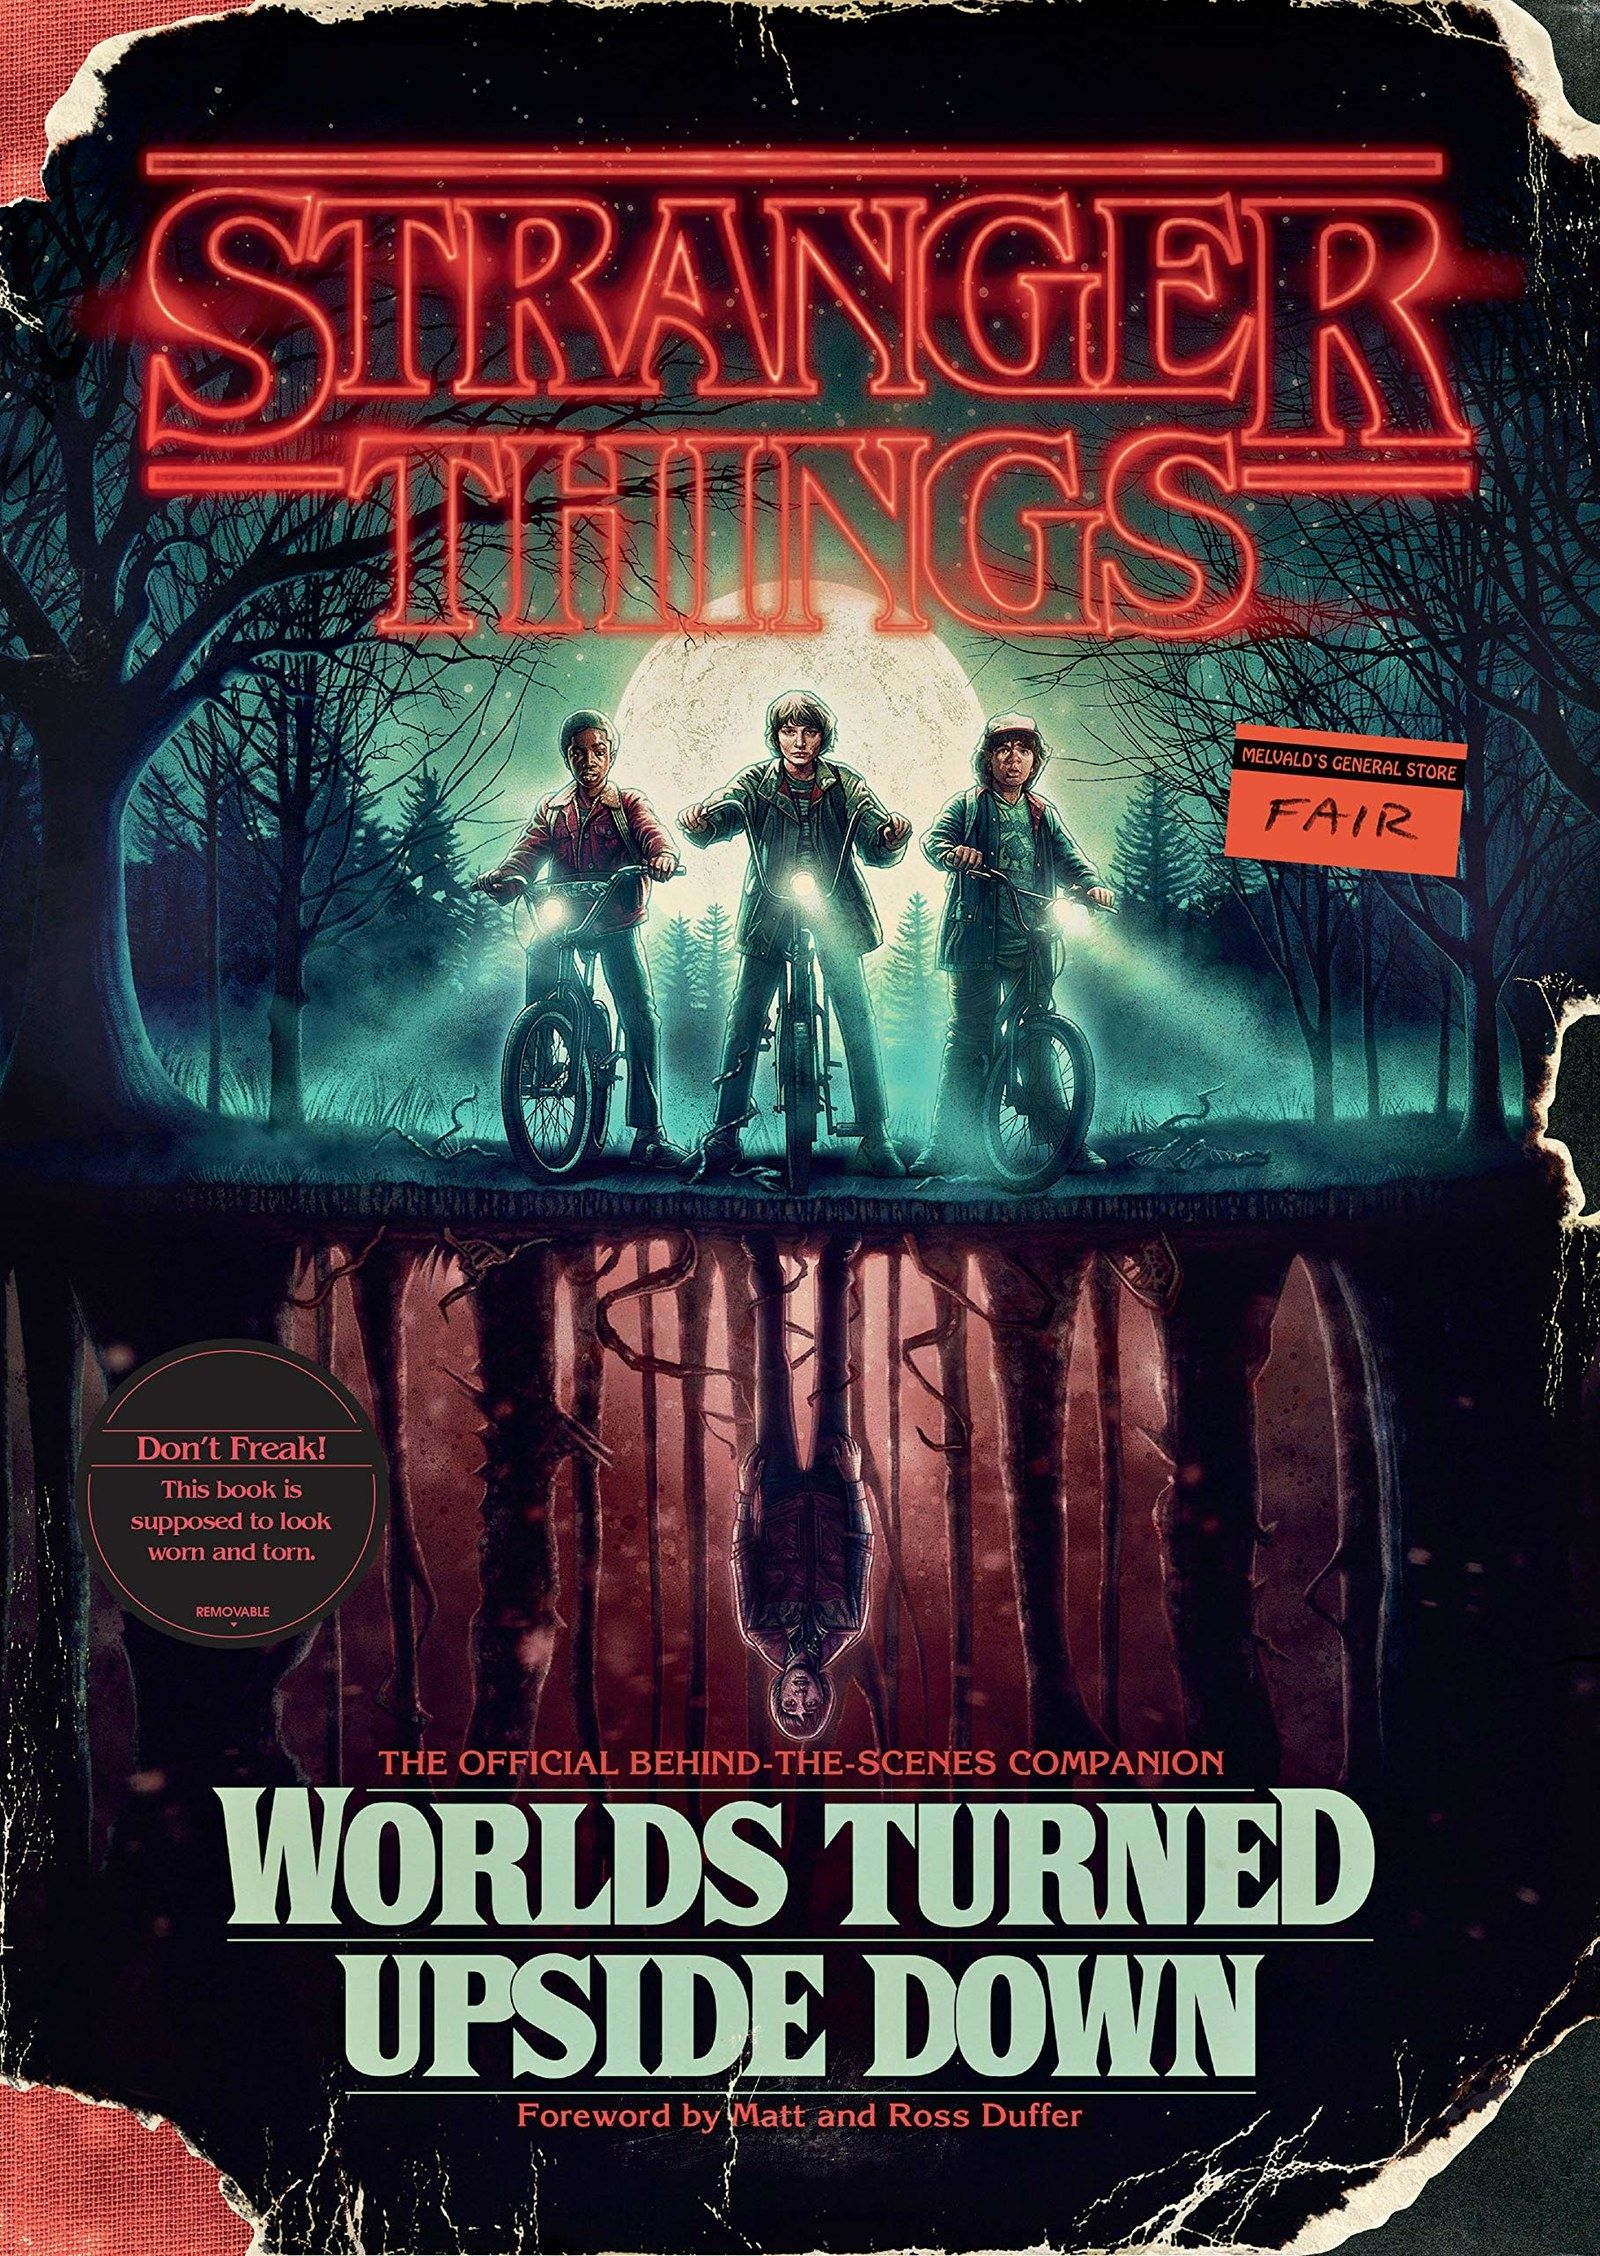 This Stranger Things Worlds Turned Upside Down Book The Official Behind The Scenes Companion Guide To The First Two Seasons Stranger Things Upside Down Stranger Things Stranger Things Have Happened